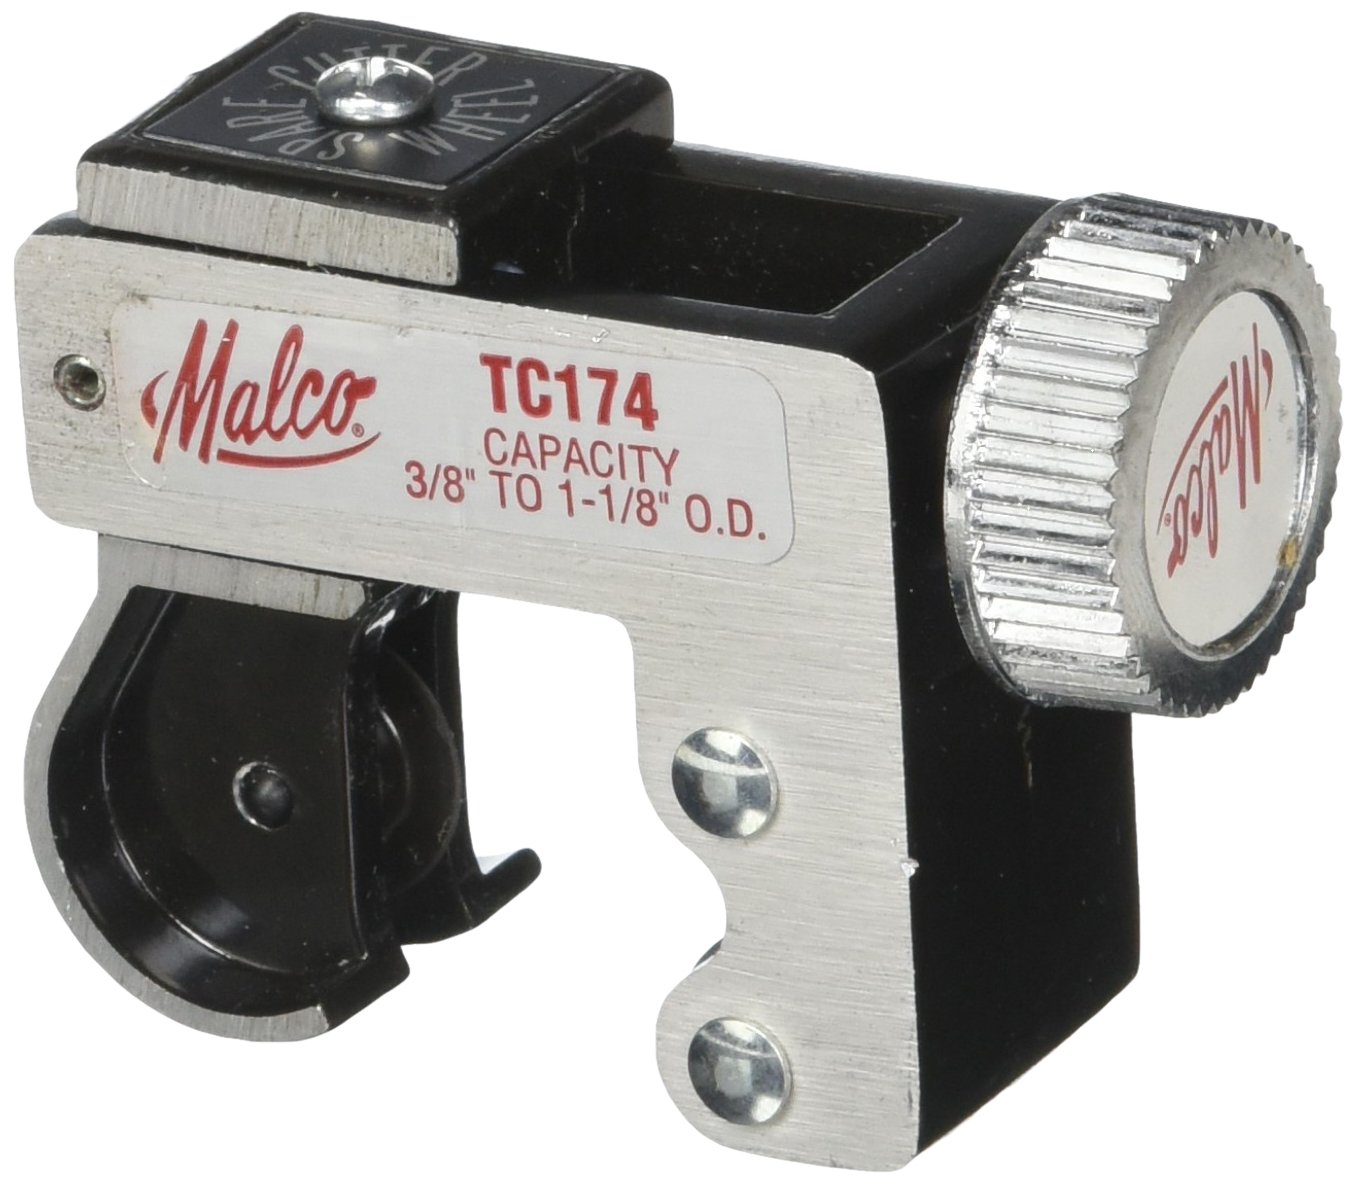 Malco TC174 Big Imp Tube Cutter, Black Standard Plumbing Supply